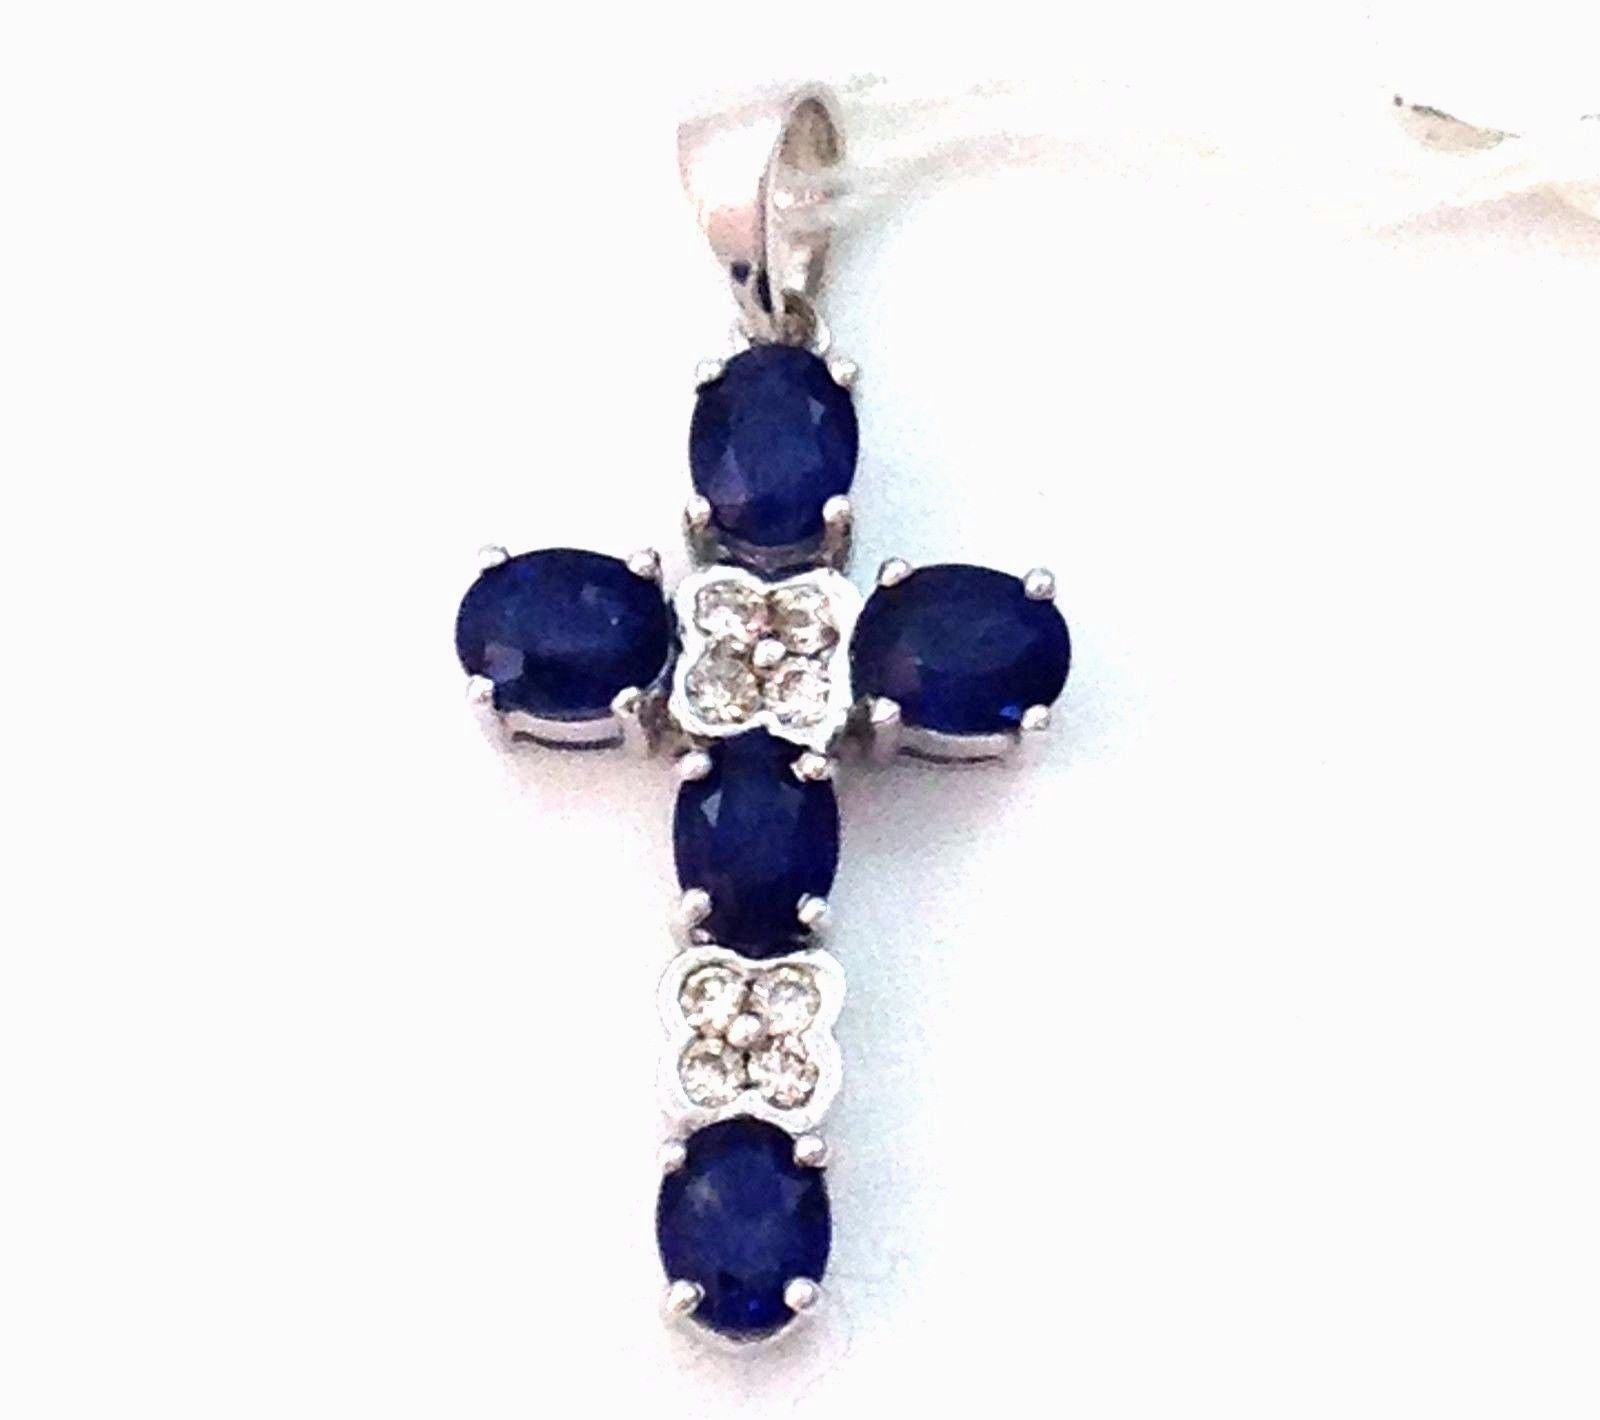 Genuine 2.09 cttw Sapphire & Diamond Cross Pendant 14K white gold NWT $1100